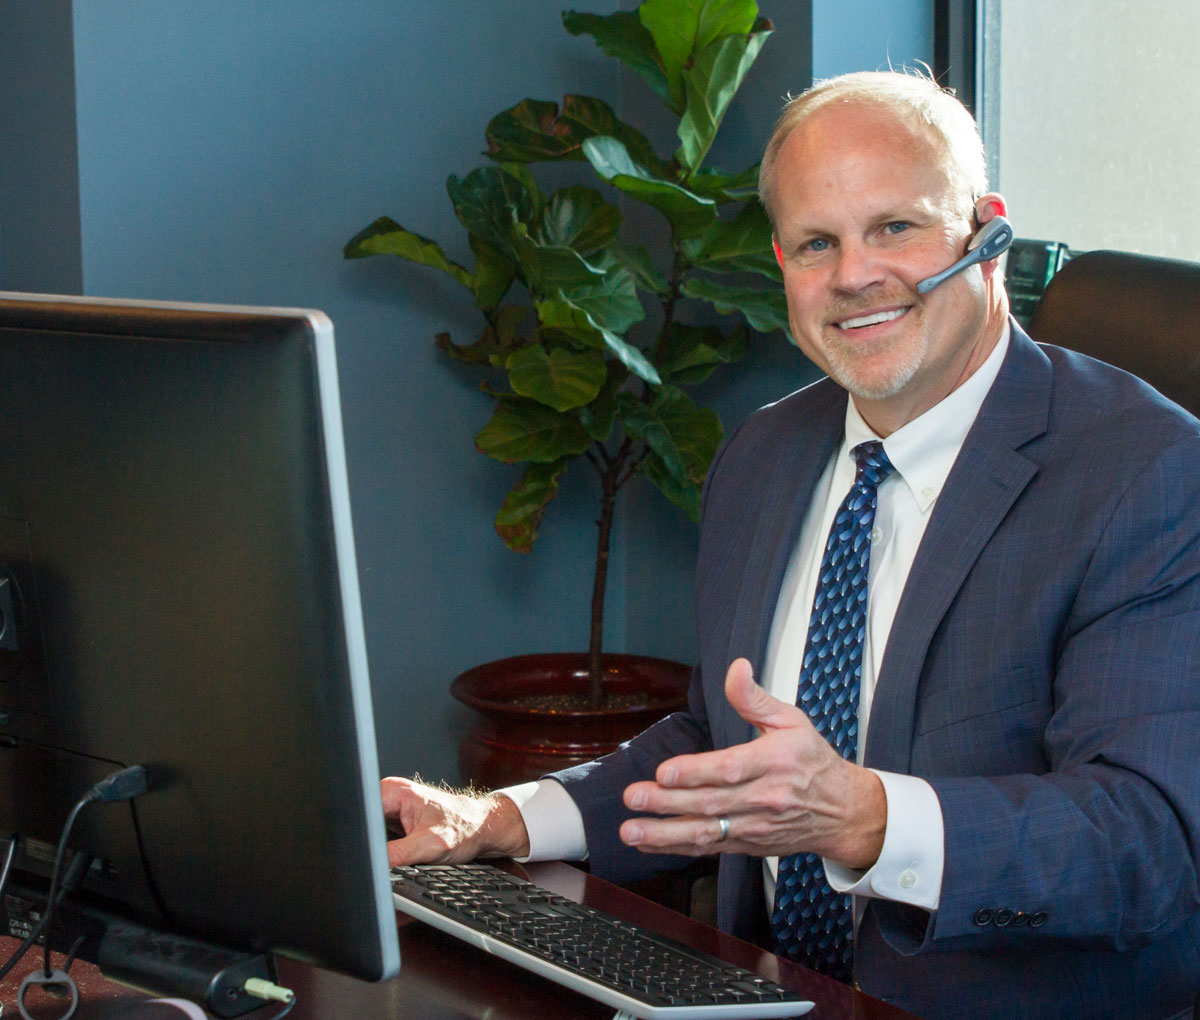 Dan Langworthy, Financial Advisor - Welcoming you to his office in Rochester, MN.